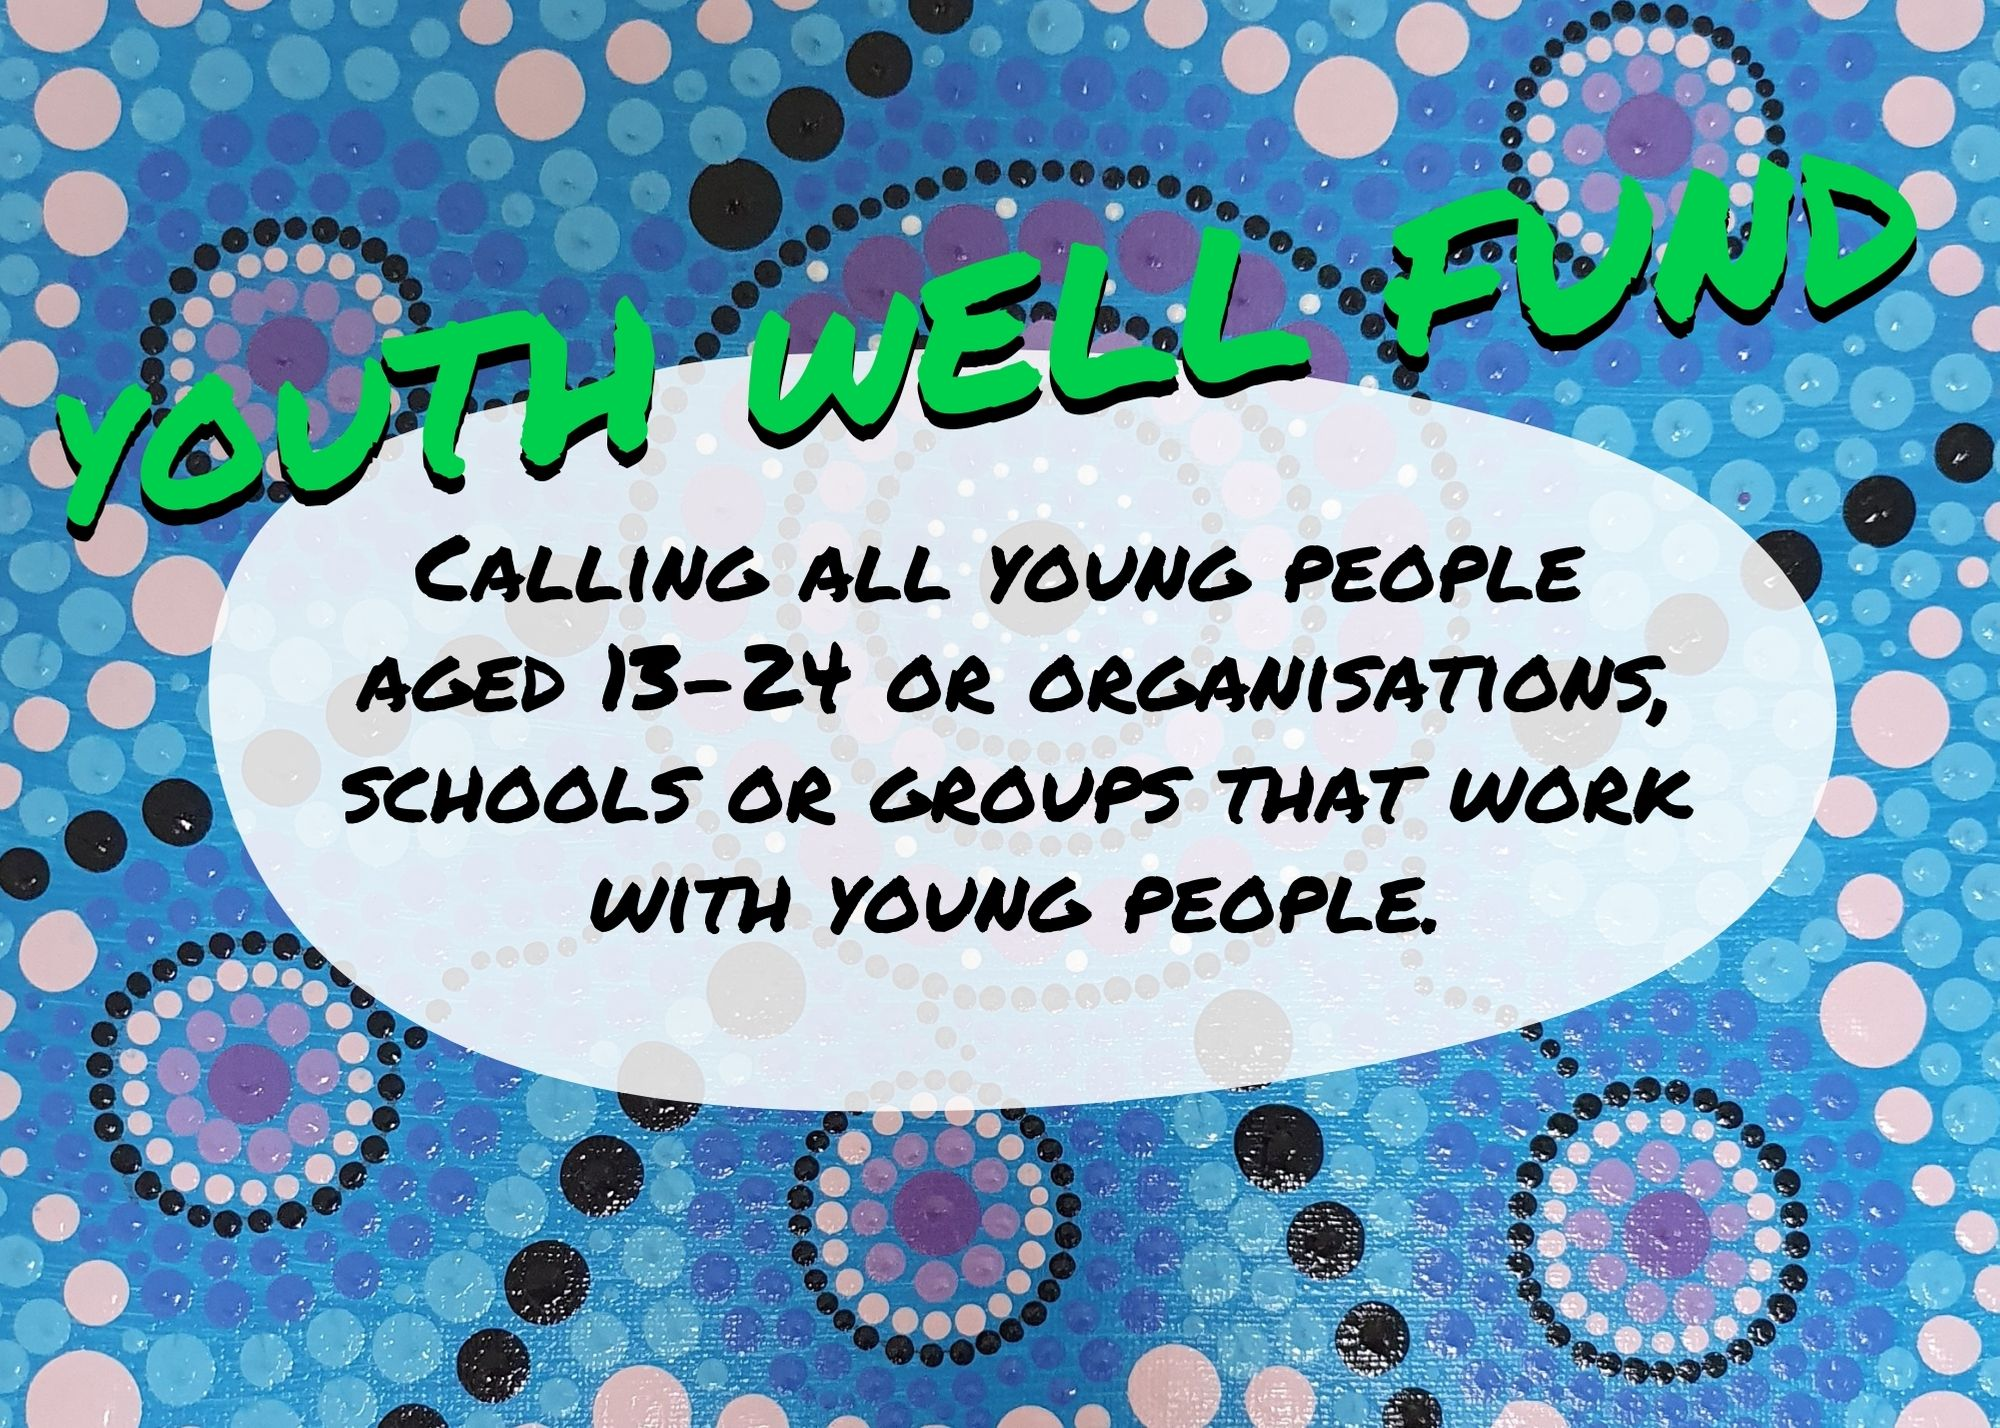 Youth Well Fund - Calling all young people aged 13 to 25 or organisations, schools, or groups that work with young people.